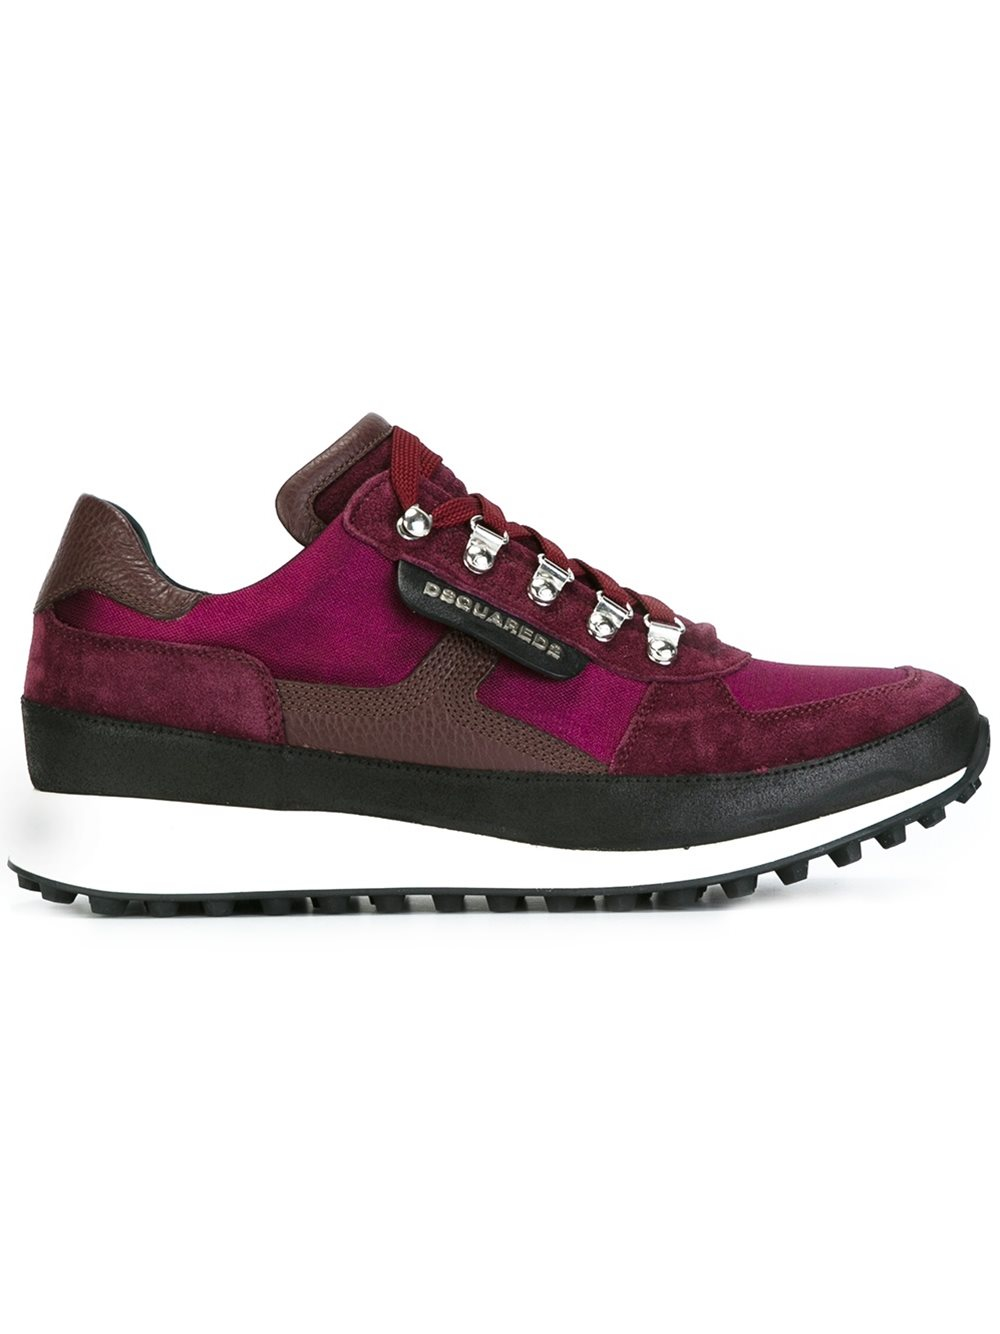 dsquared 39 dean goes hiking 39 sneakers in purple for men lyst. Black Bedroom Furniture Sets. Home Design Ideas